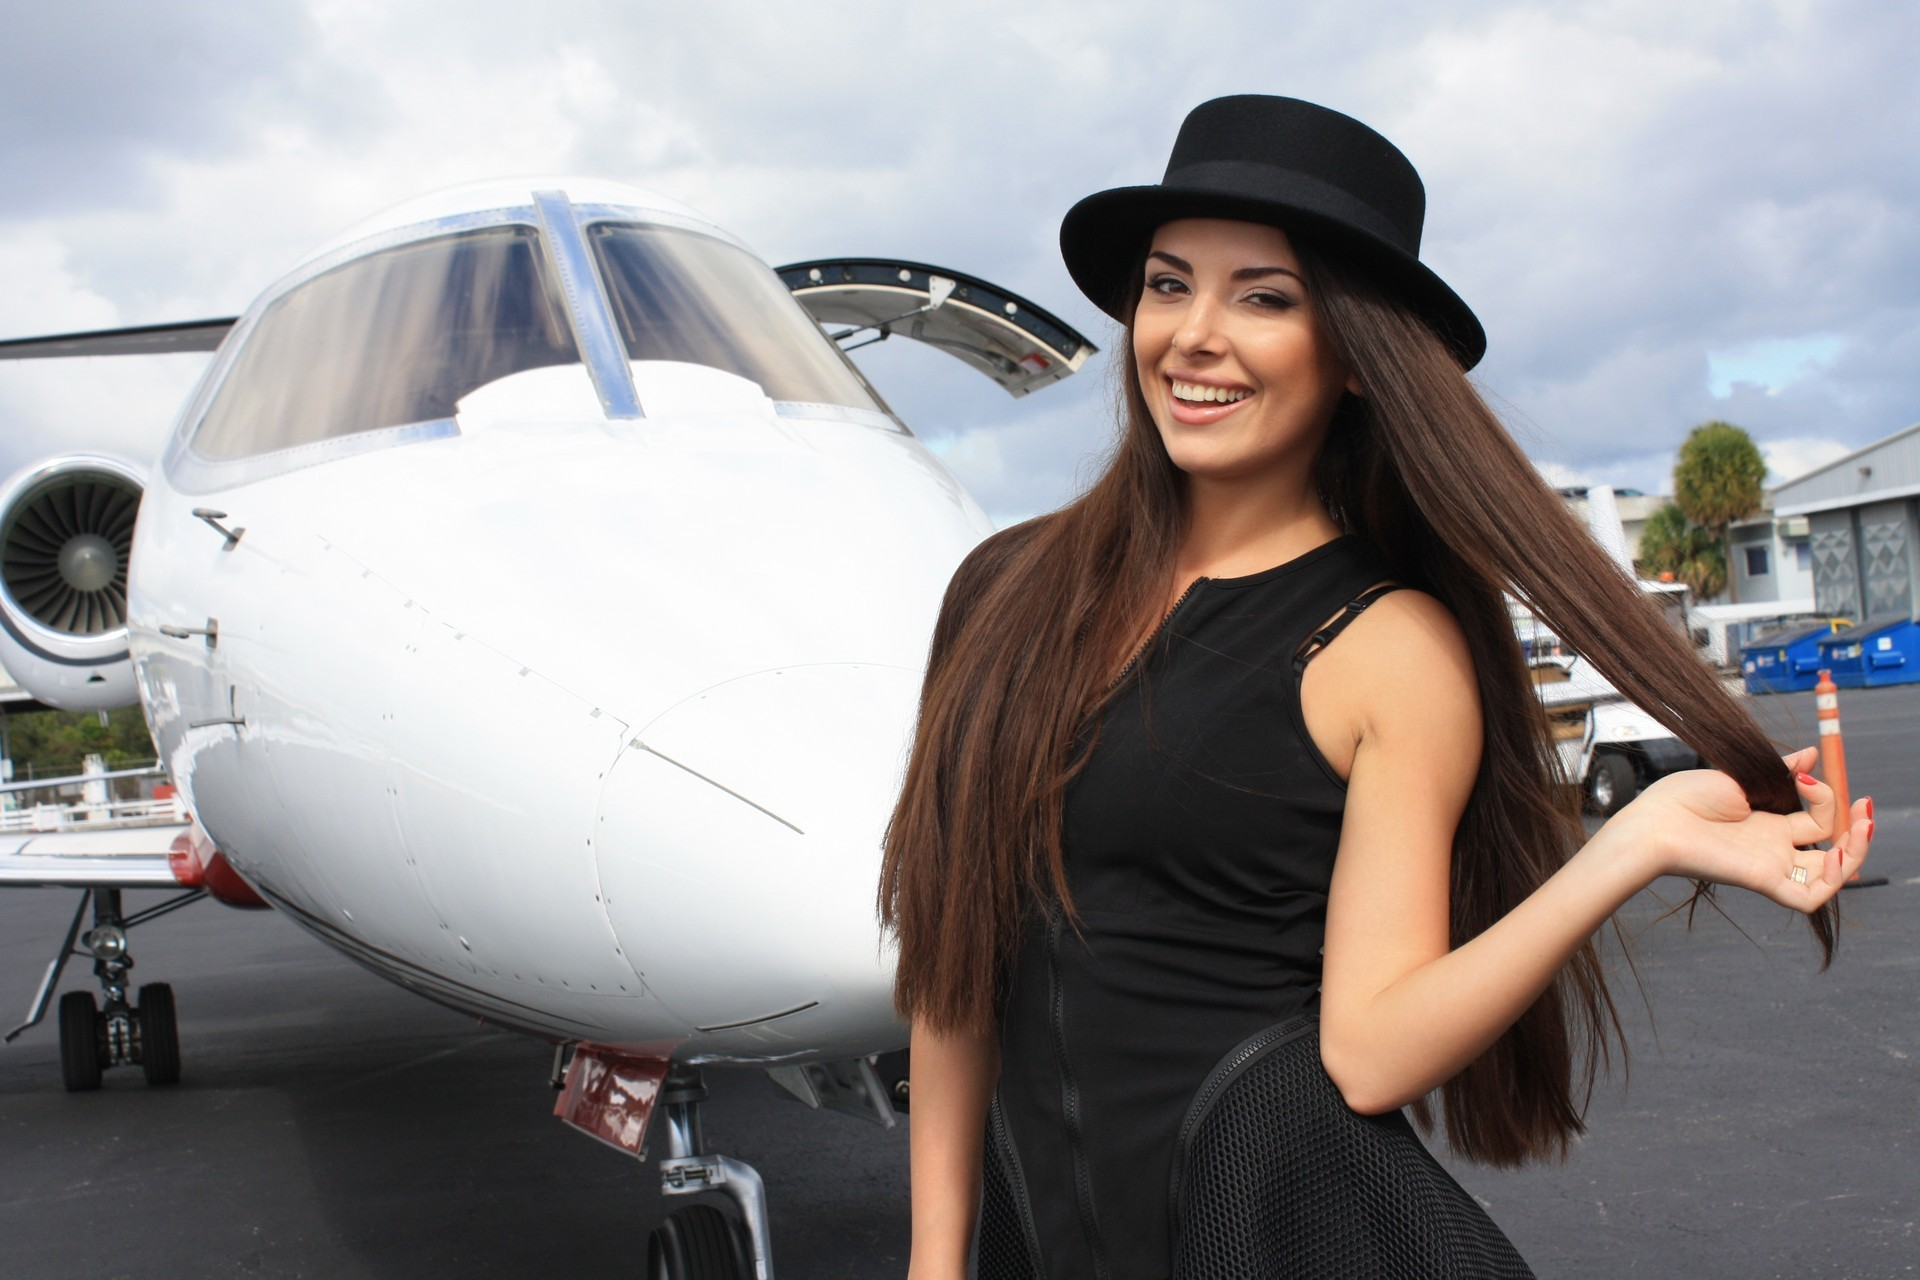 Warner Robins Private Jet and Air Charter Flights